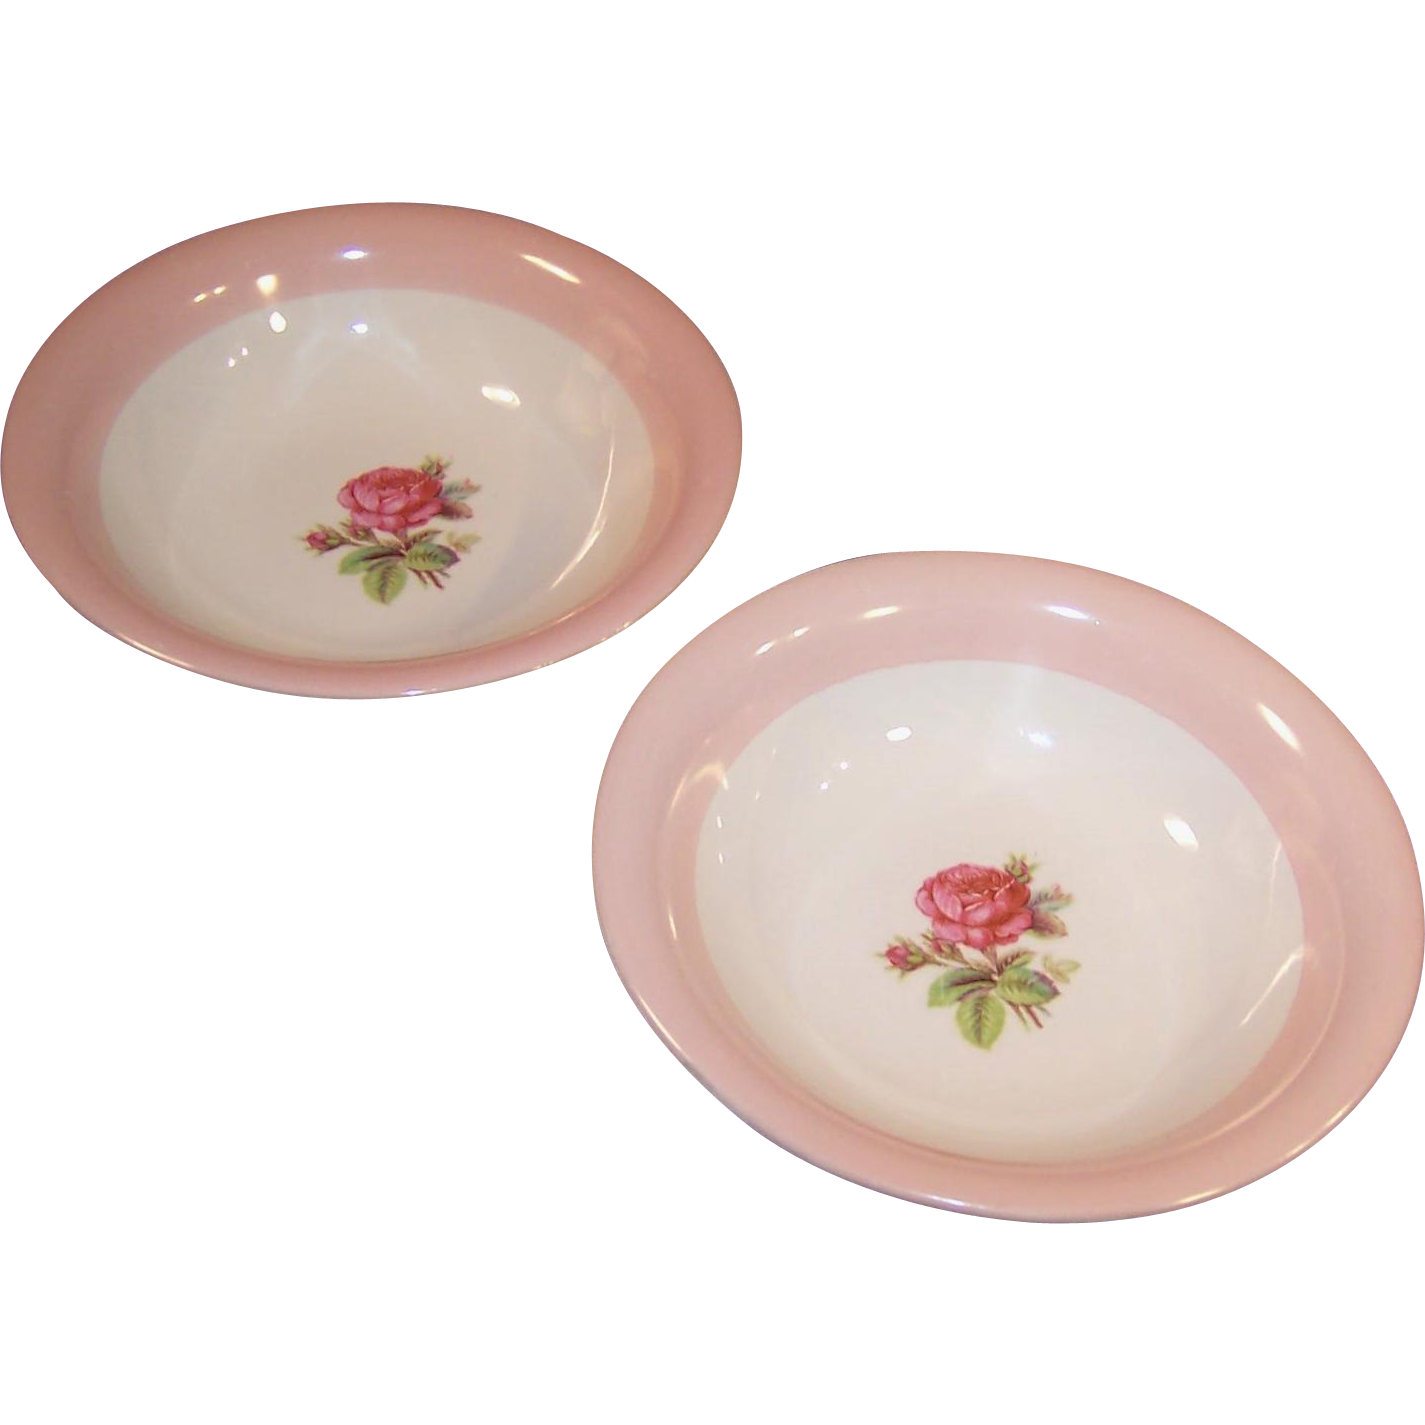 "SET OF TWO: Homer Laughlin Moss Rose 5 3/4"" Dessert or Berry Bowls"